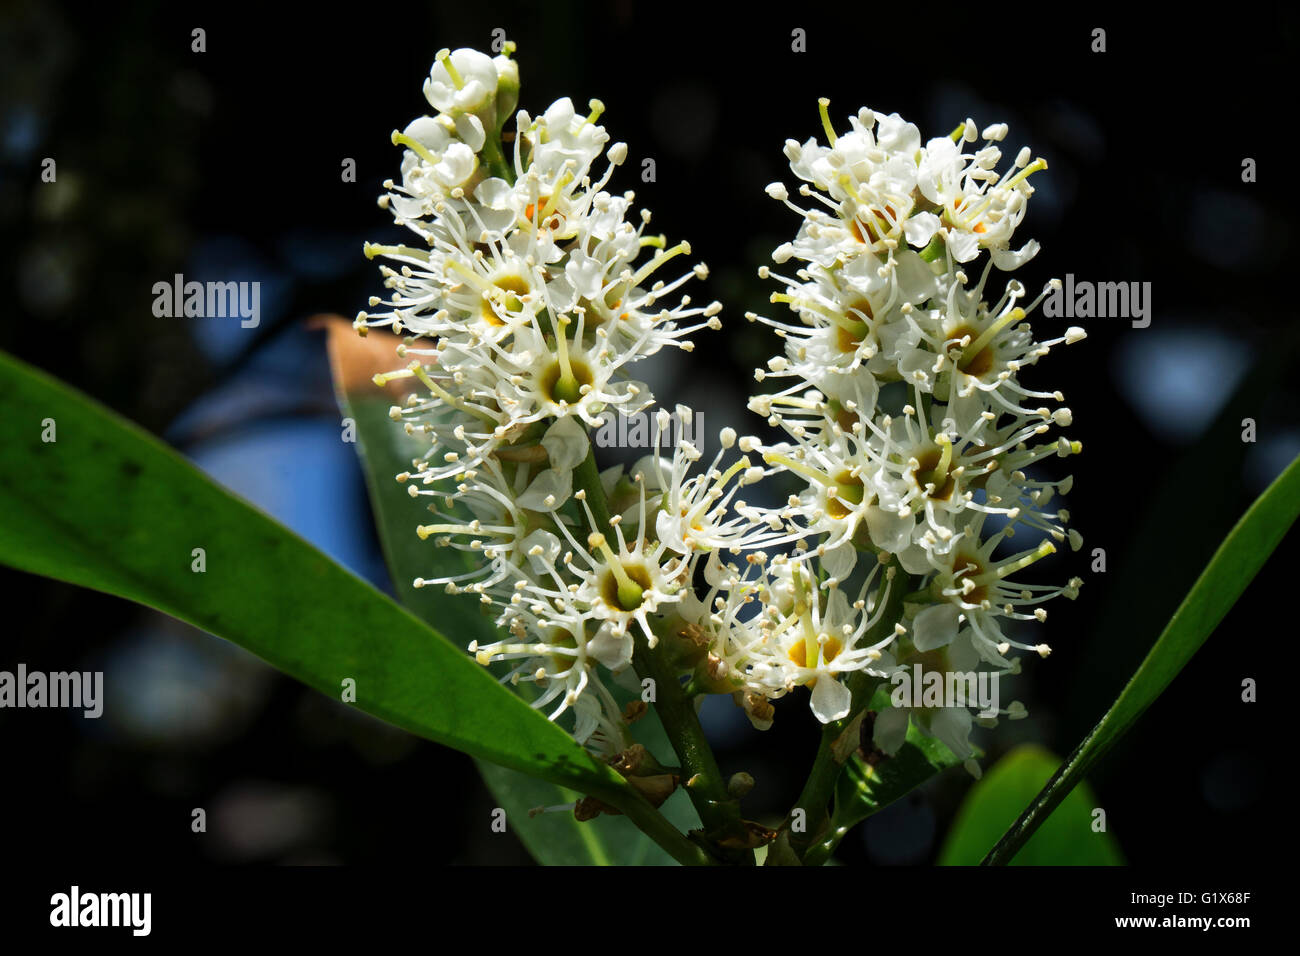 Flowers of cherry laurel (Prunus laurocerasus), also common laurel, Baden-Württemberg, Germany - Stock Image